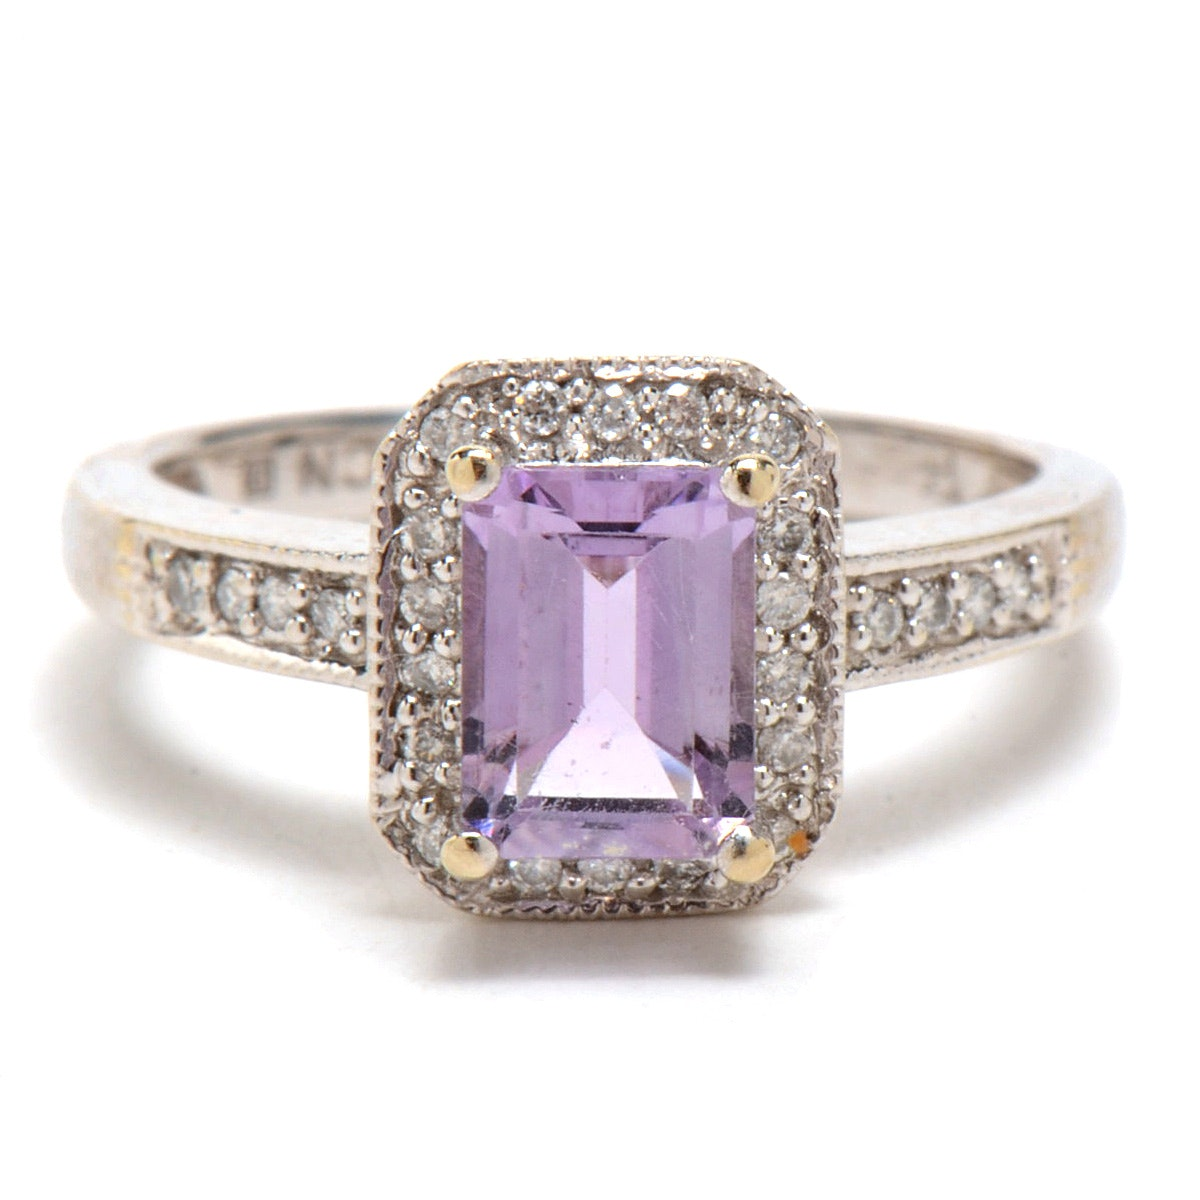 14K White Gold Amethyst Diamond Fashion Ring